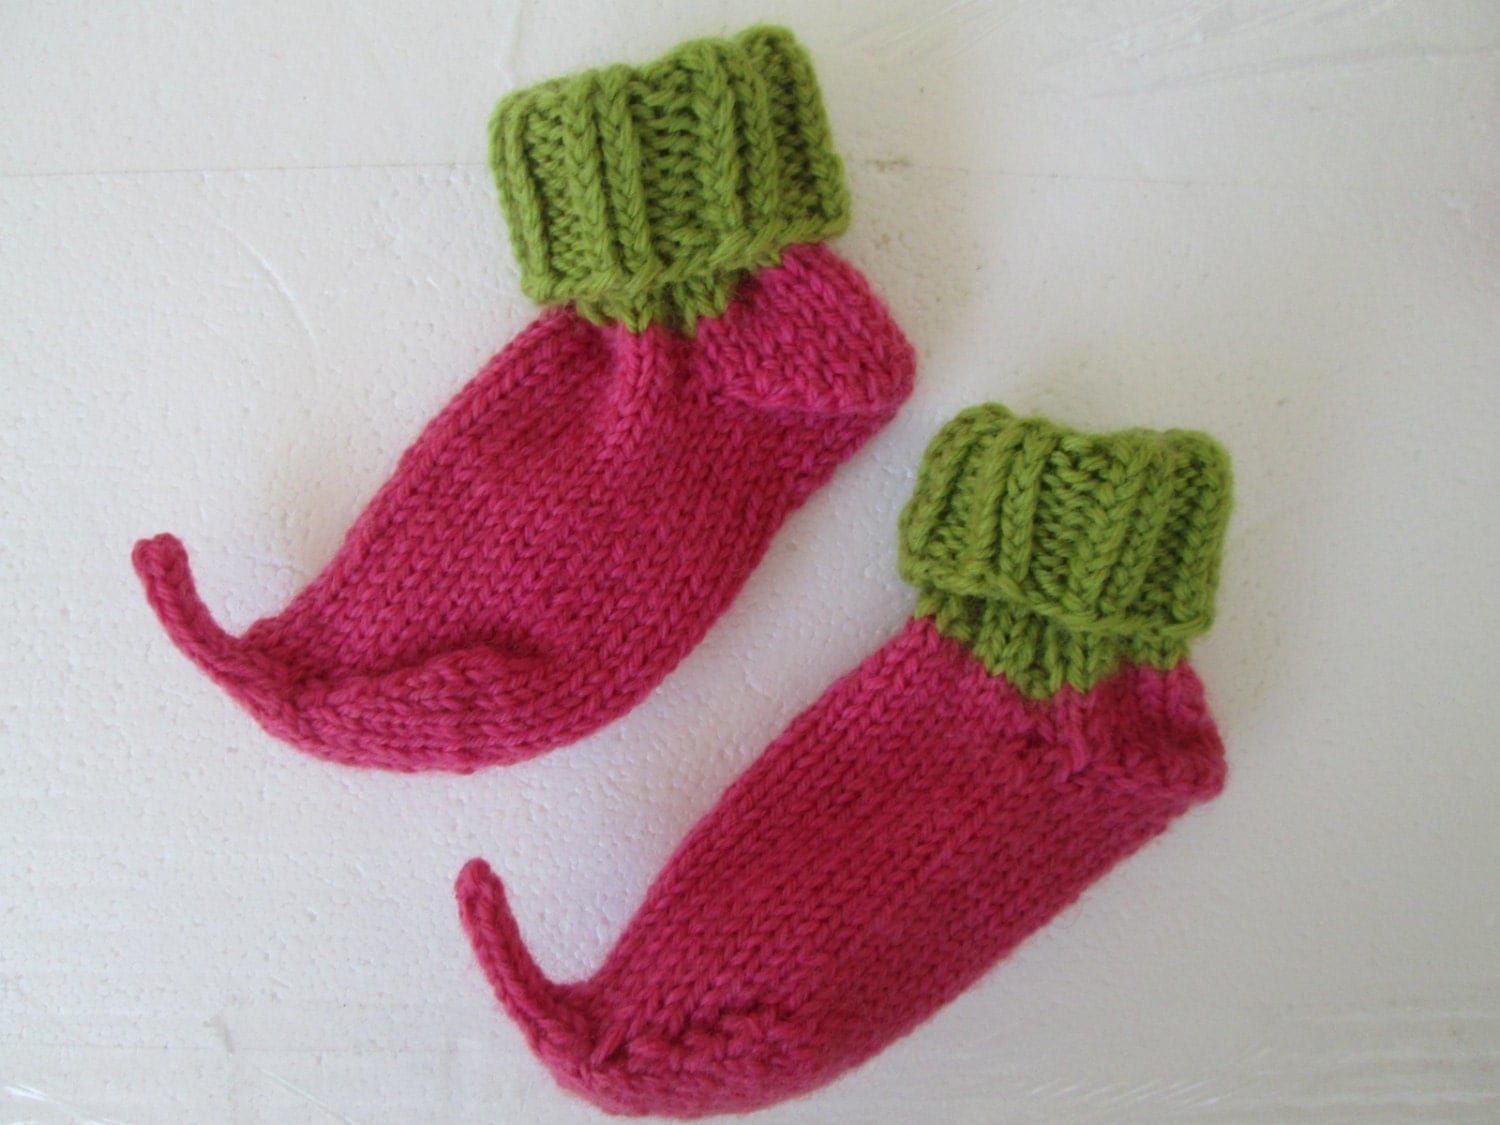 free crochet patterns: crochet elf slippers - crafts ideas